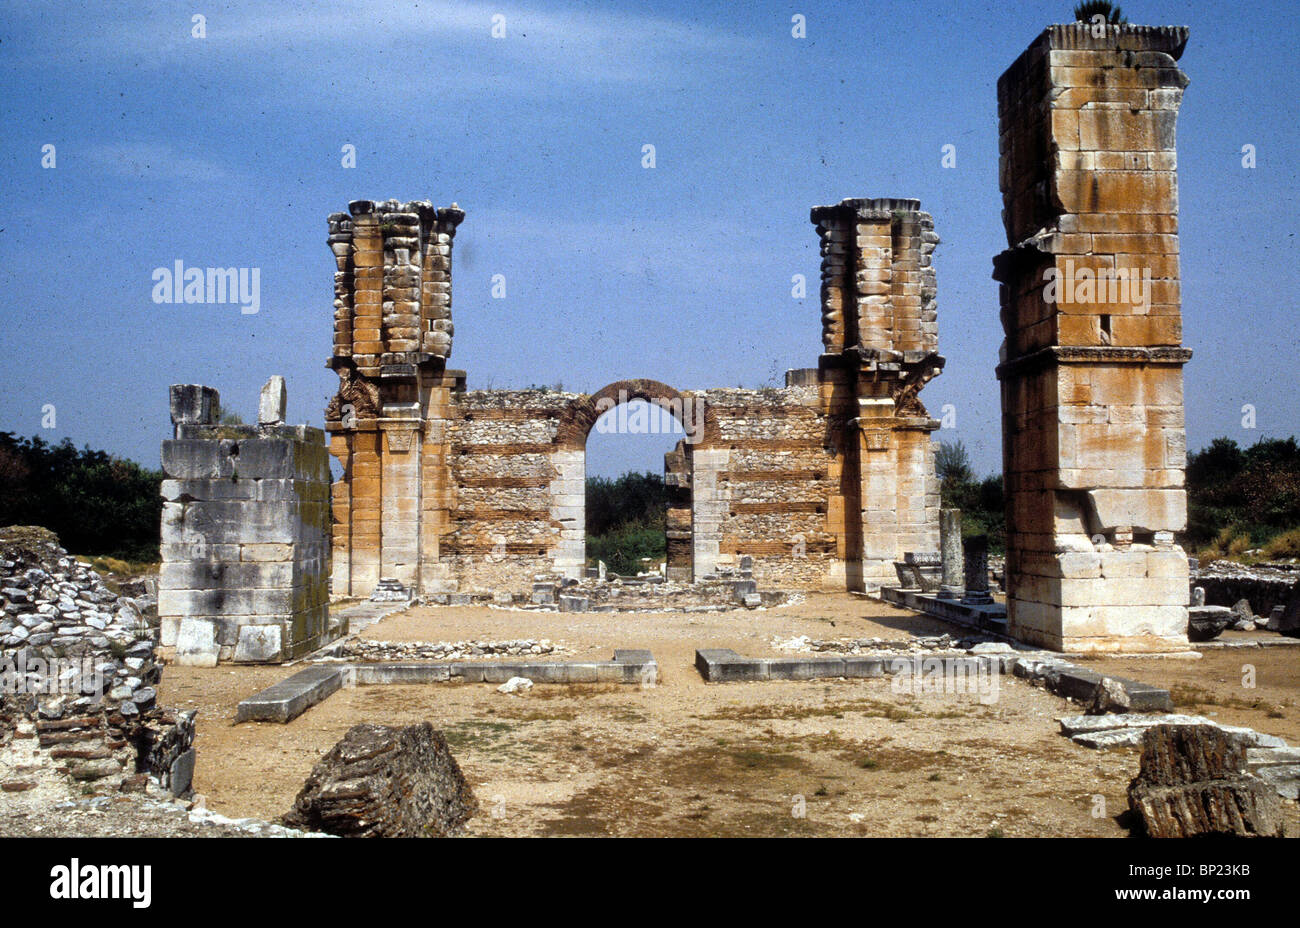 RUINS OF ANCIENT CITY IN NORTHERN GREECE. PAUL VISITED THE CITY DURING HIS FIRST MISSION, AND WAS IMPRISONED (ACTS, - Stock Image